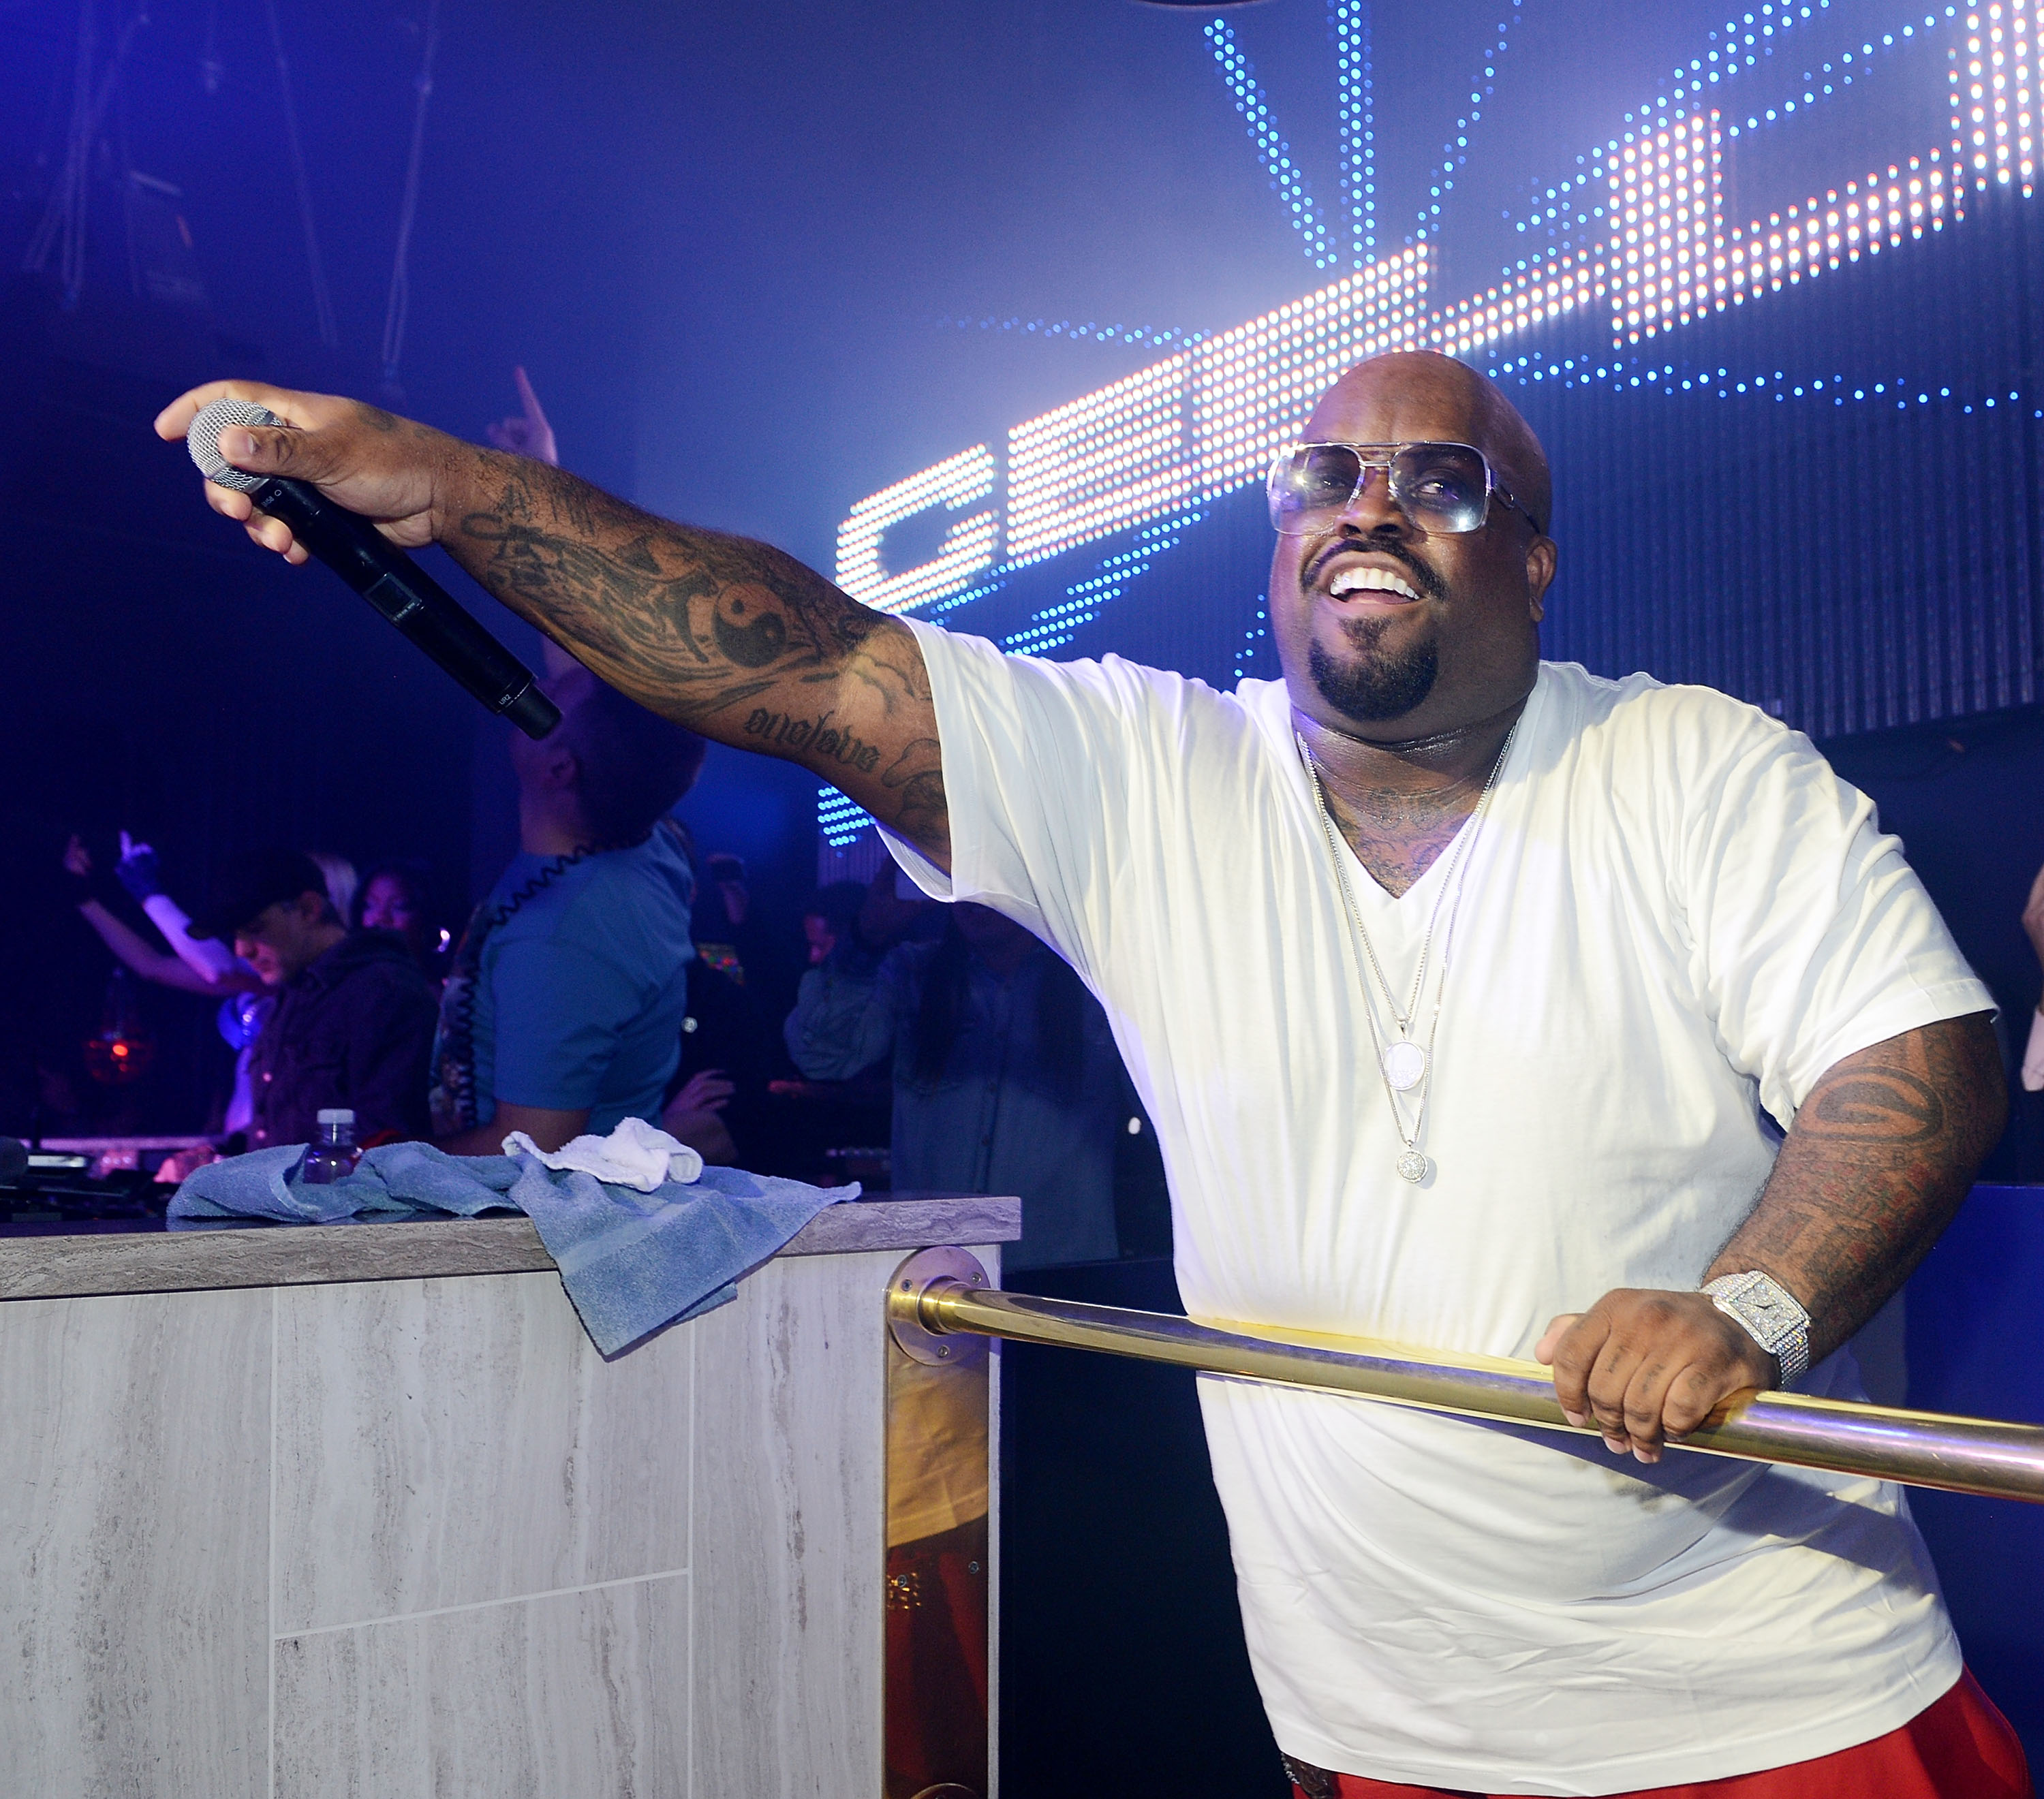 CeeLo Green performs at Chateau Nightclub In Las Vegas Dec. 30. (Denise Truscello/WireImage)